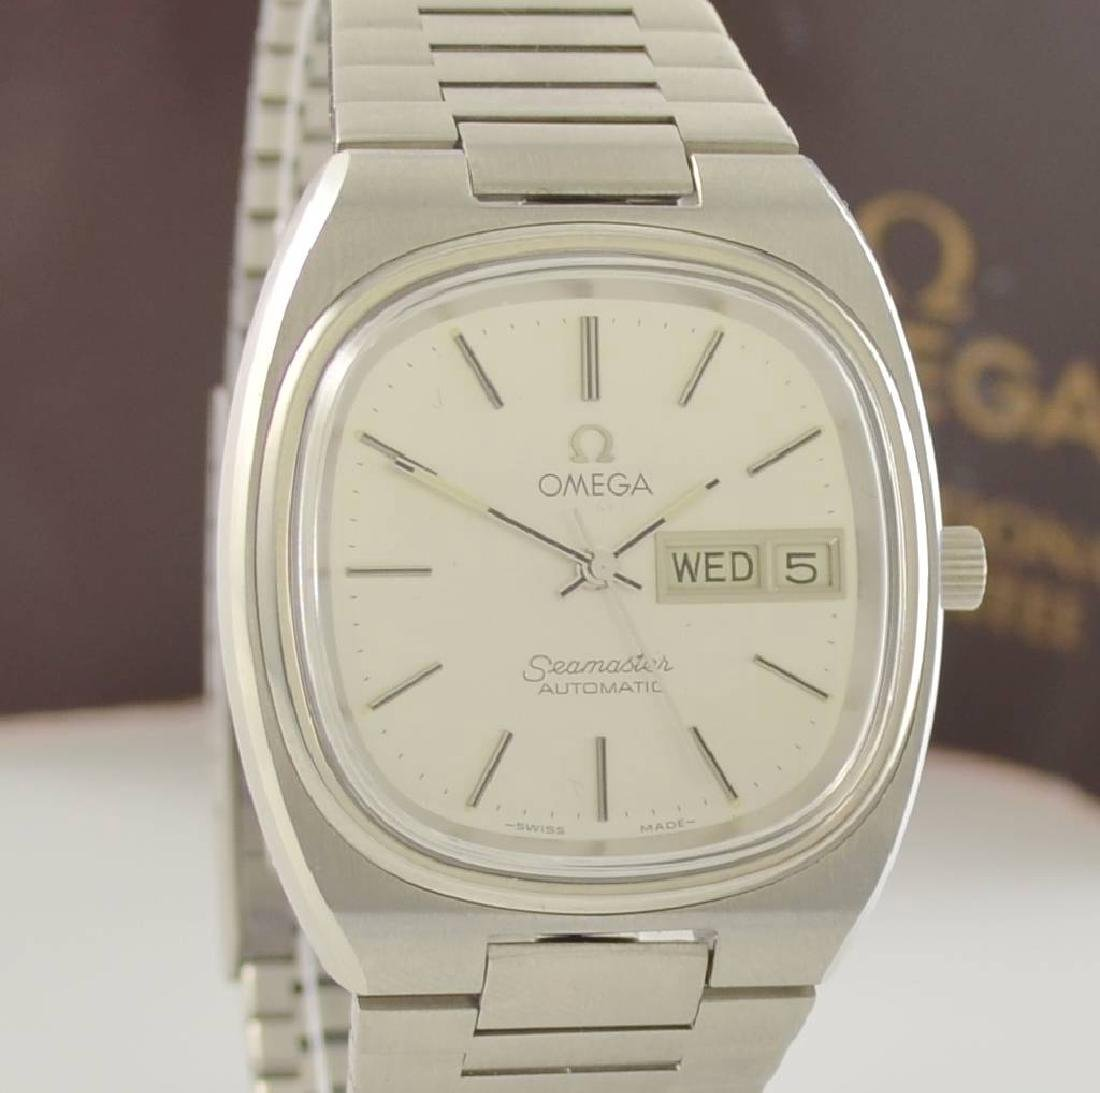 OMEGA Seamaster stainless steel gents wristwatch - 7